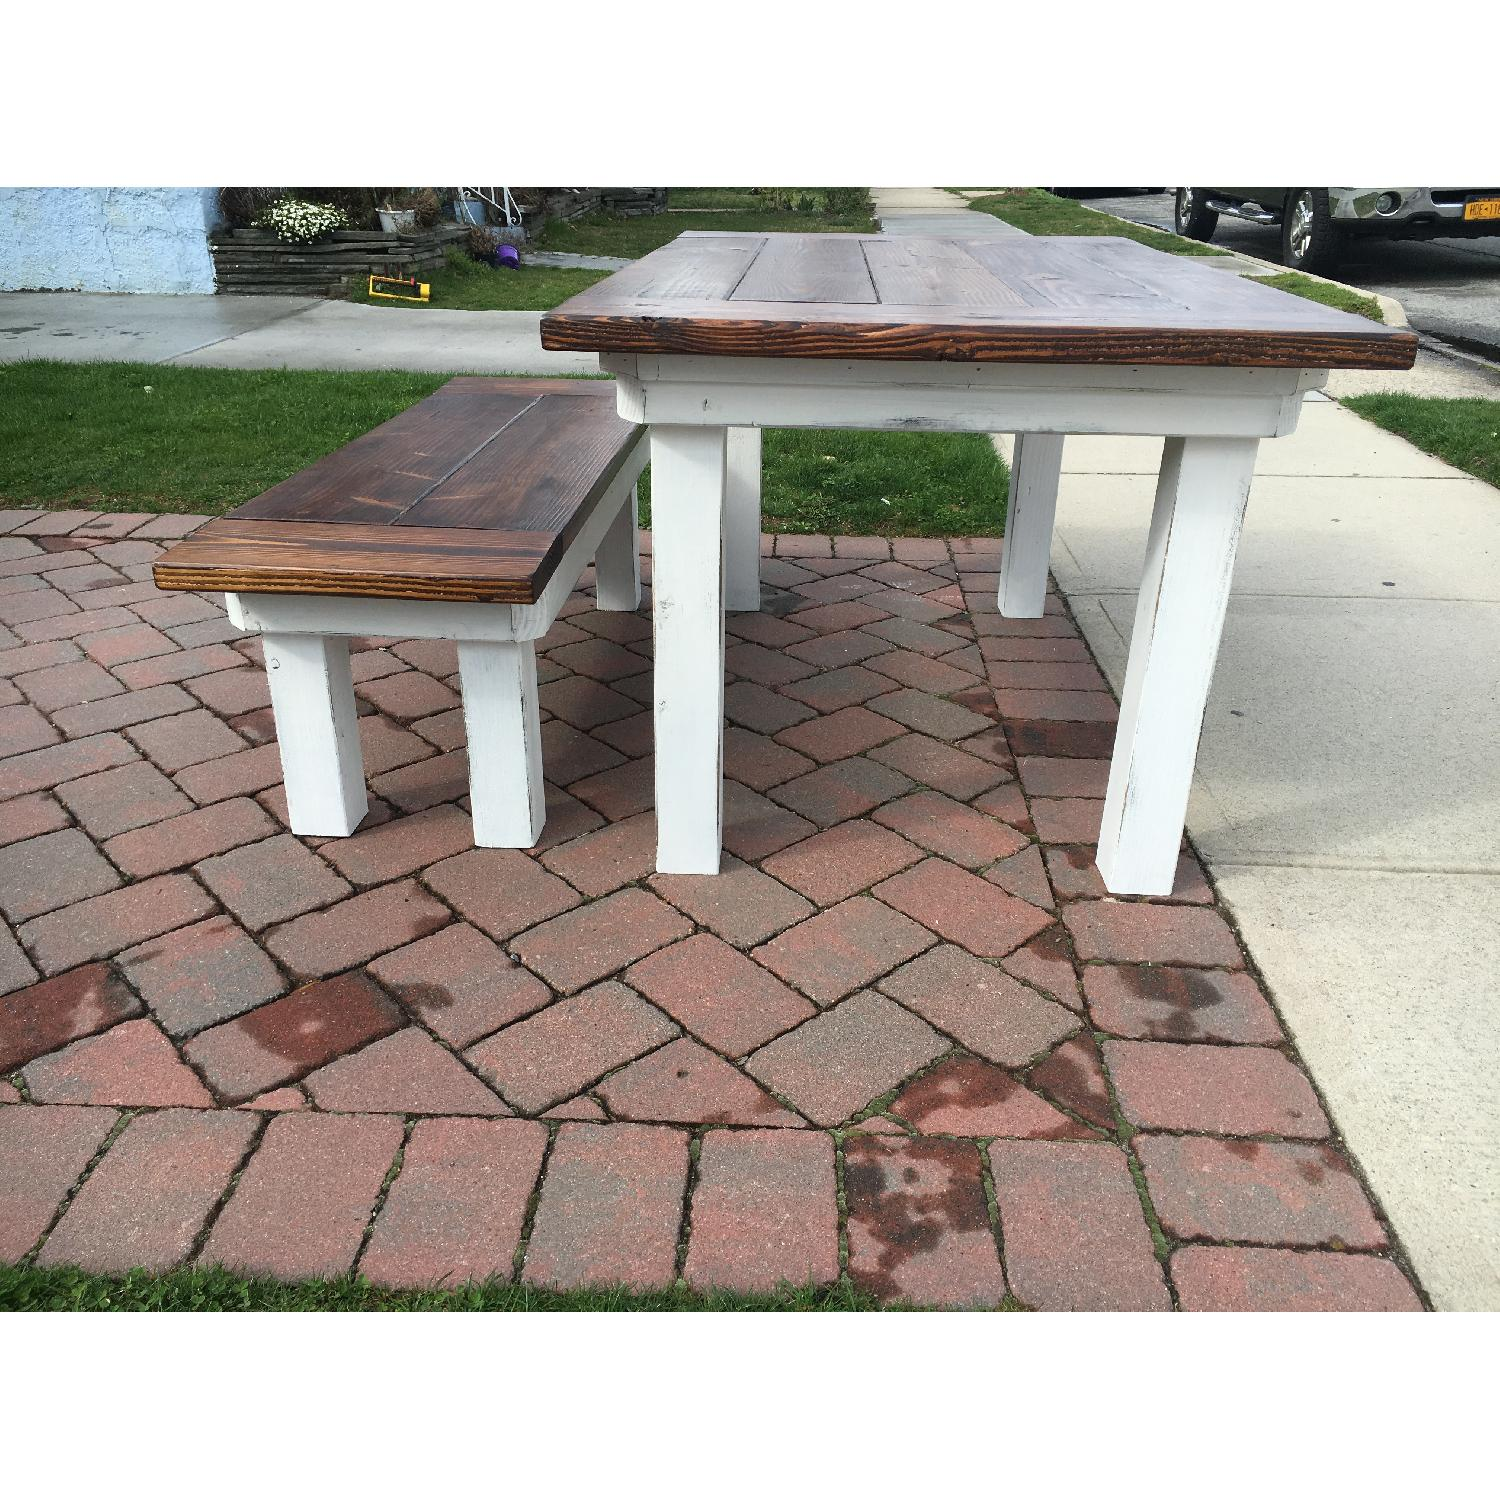 Rustic Farm Table w/ 1 Bench - image-1